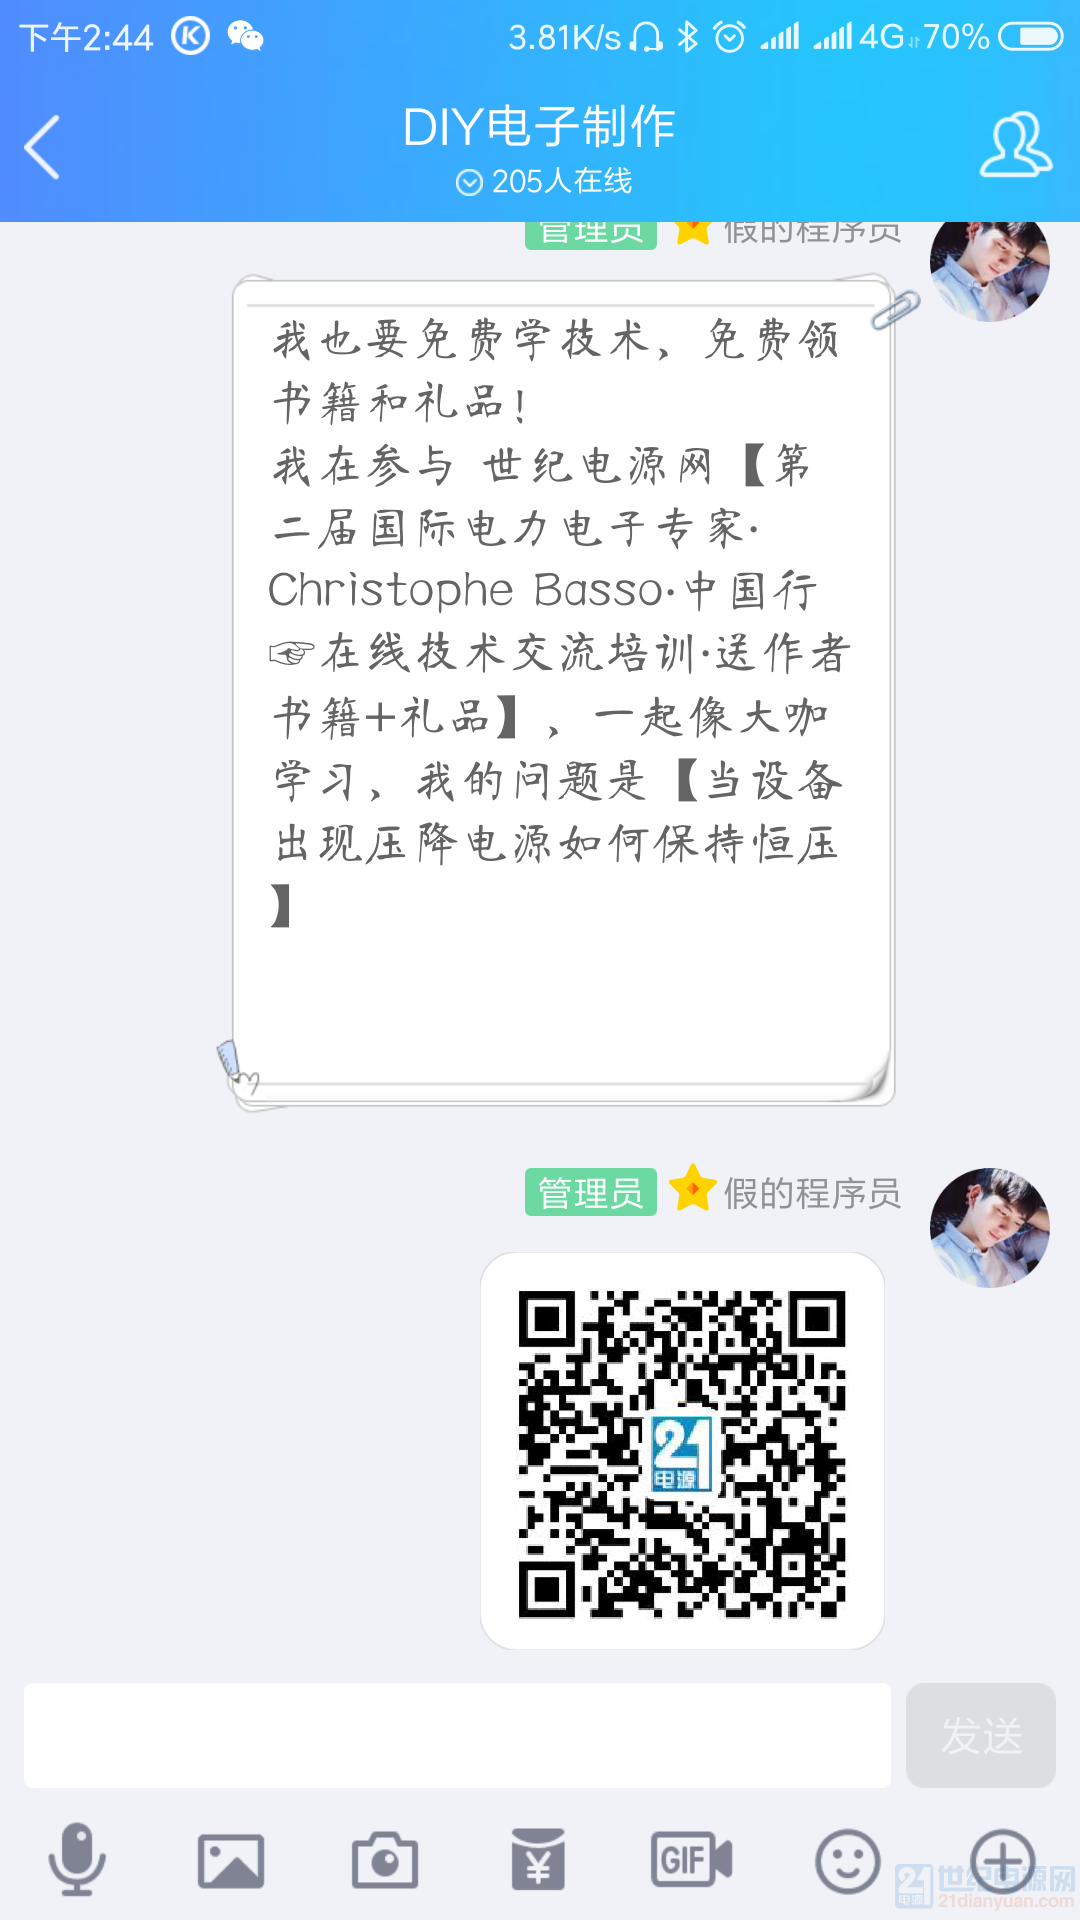 Screenshot_2018-10-12-14-44-44-743_com.tencent.mobileqq.png